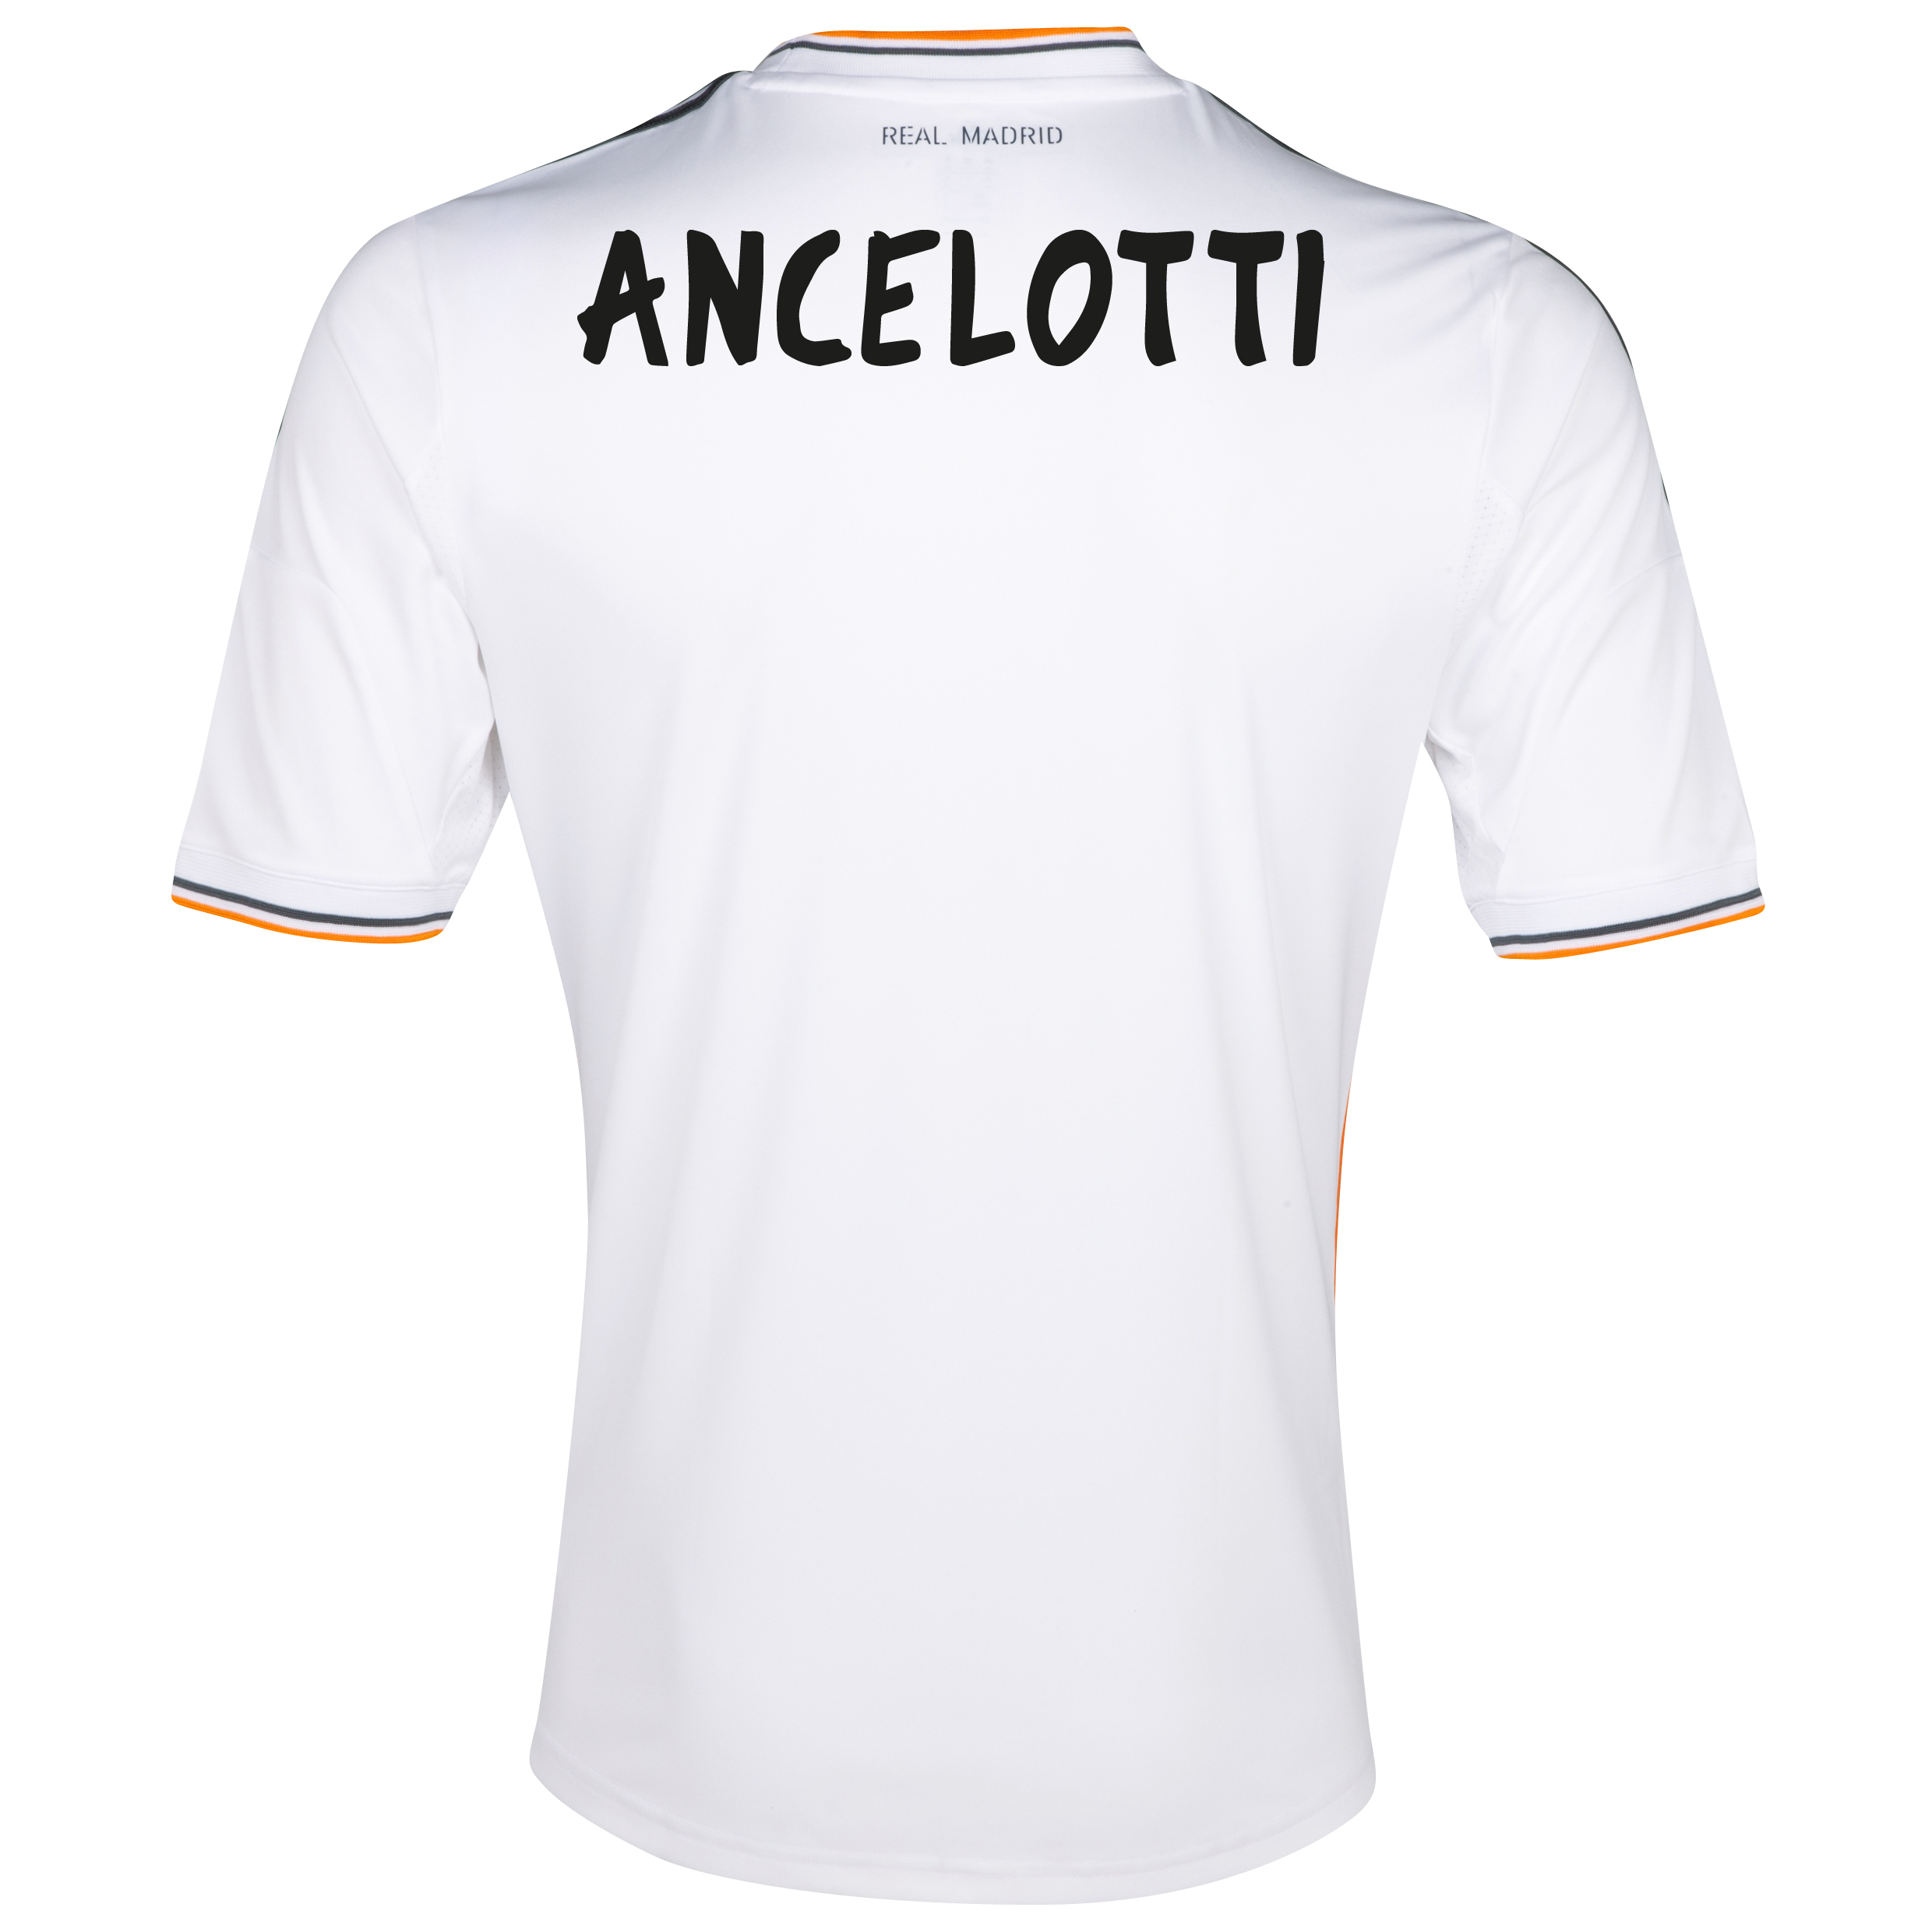 Real Madrid Home Shirt 2013/14 with Ancelotti  printing